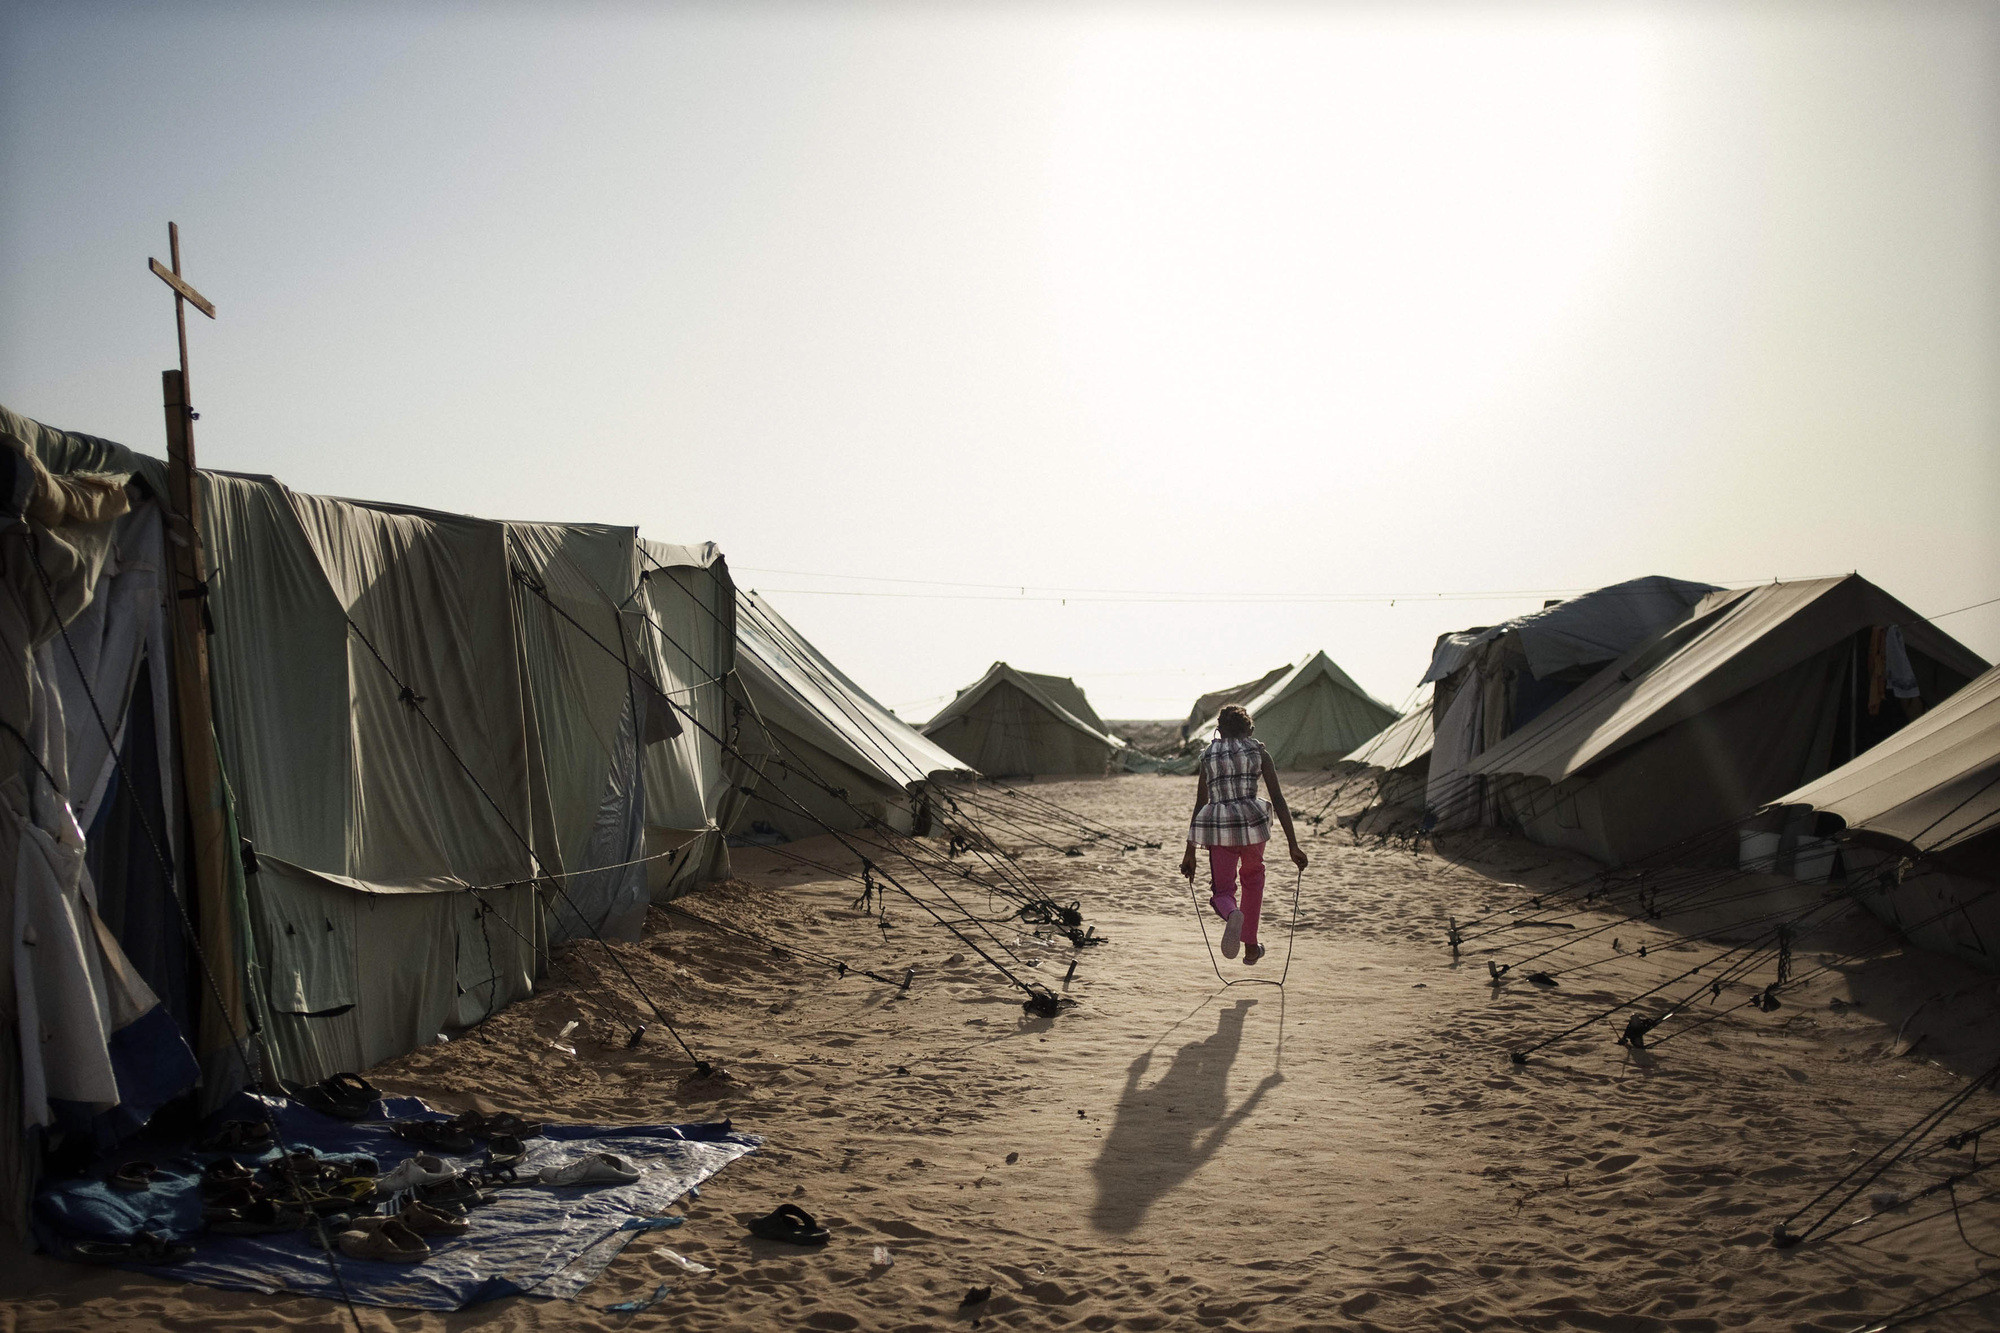 Beyond the Tent: Why Refugee Camps Need Architects (Now More than Ever), Courtesy of refugeecamp.ca